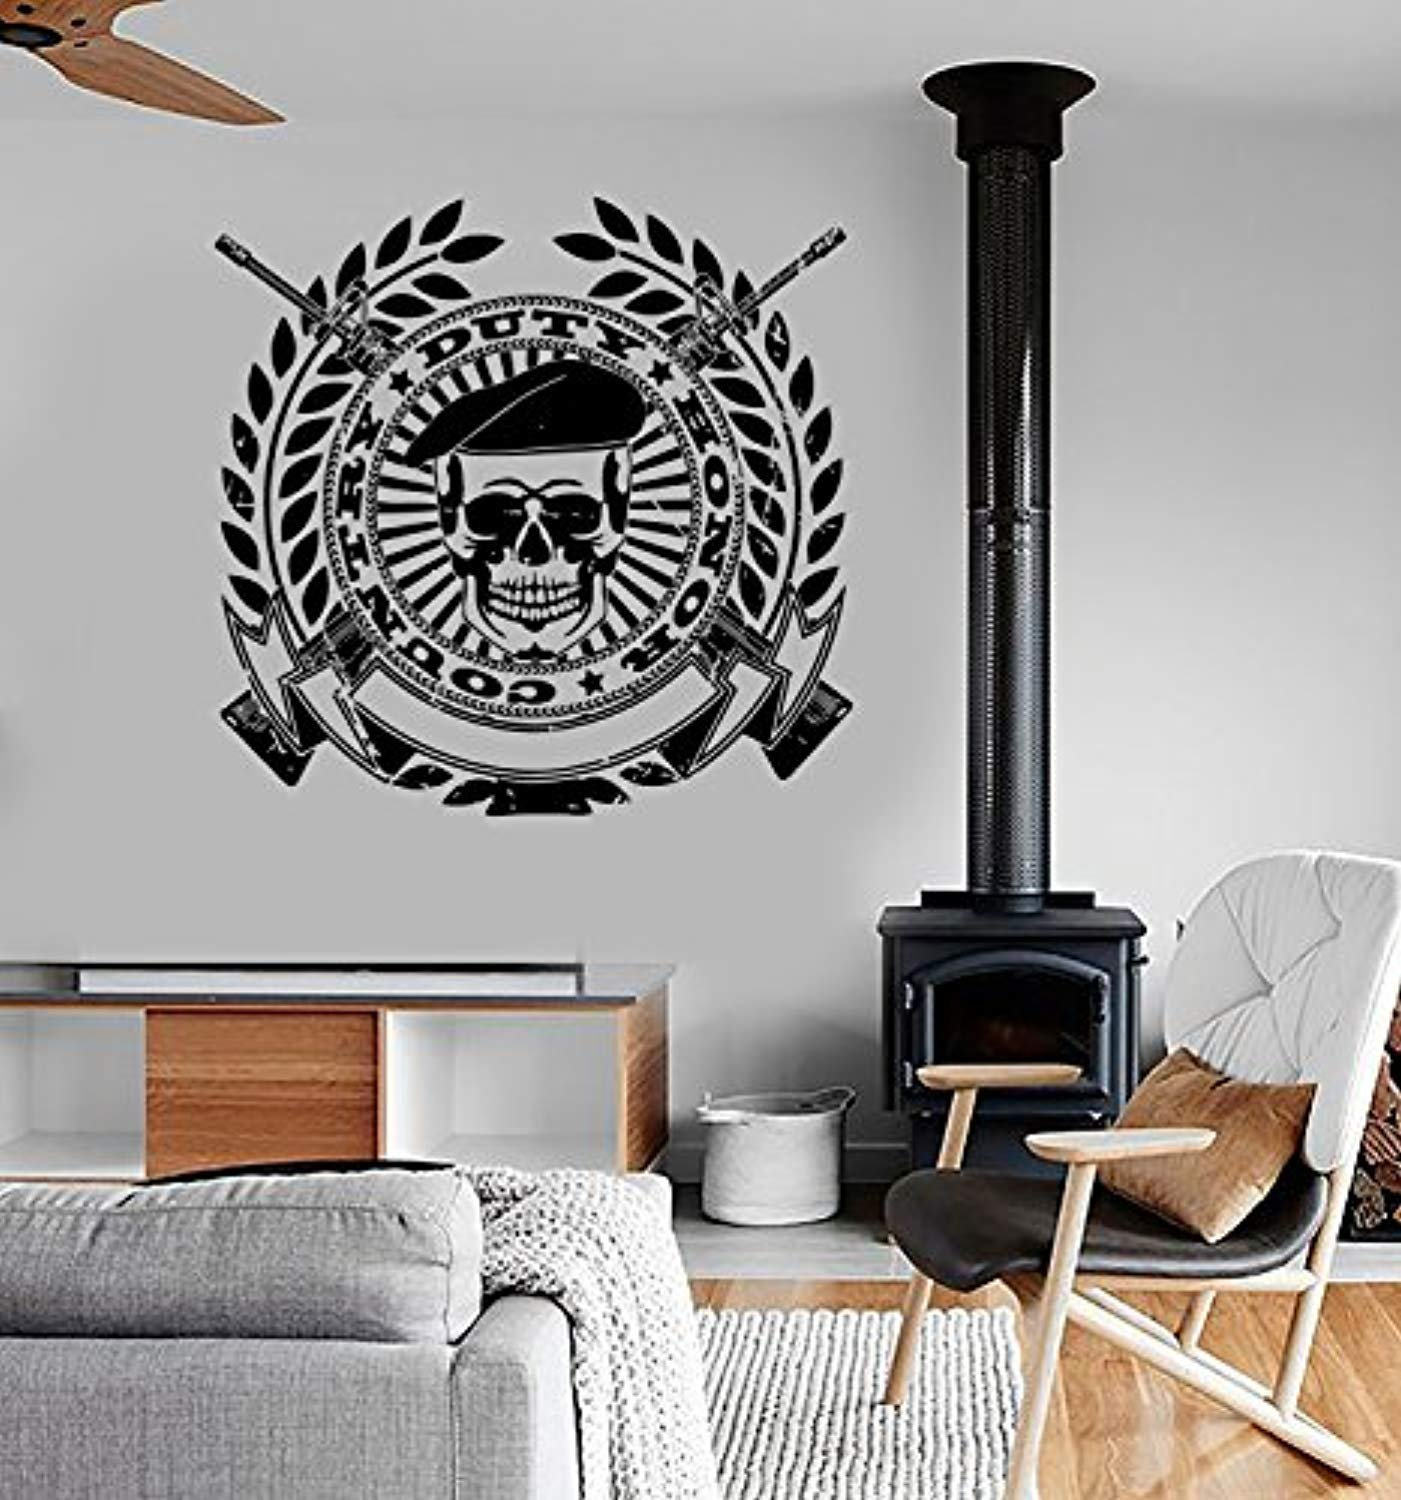 ANewDecals Wall Vinyl Army Soldier Honor Duty Guaranteed Quality Decal Mural Art G2396